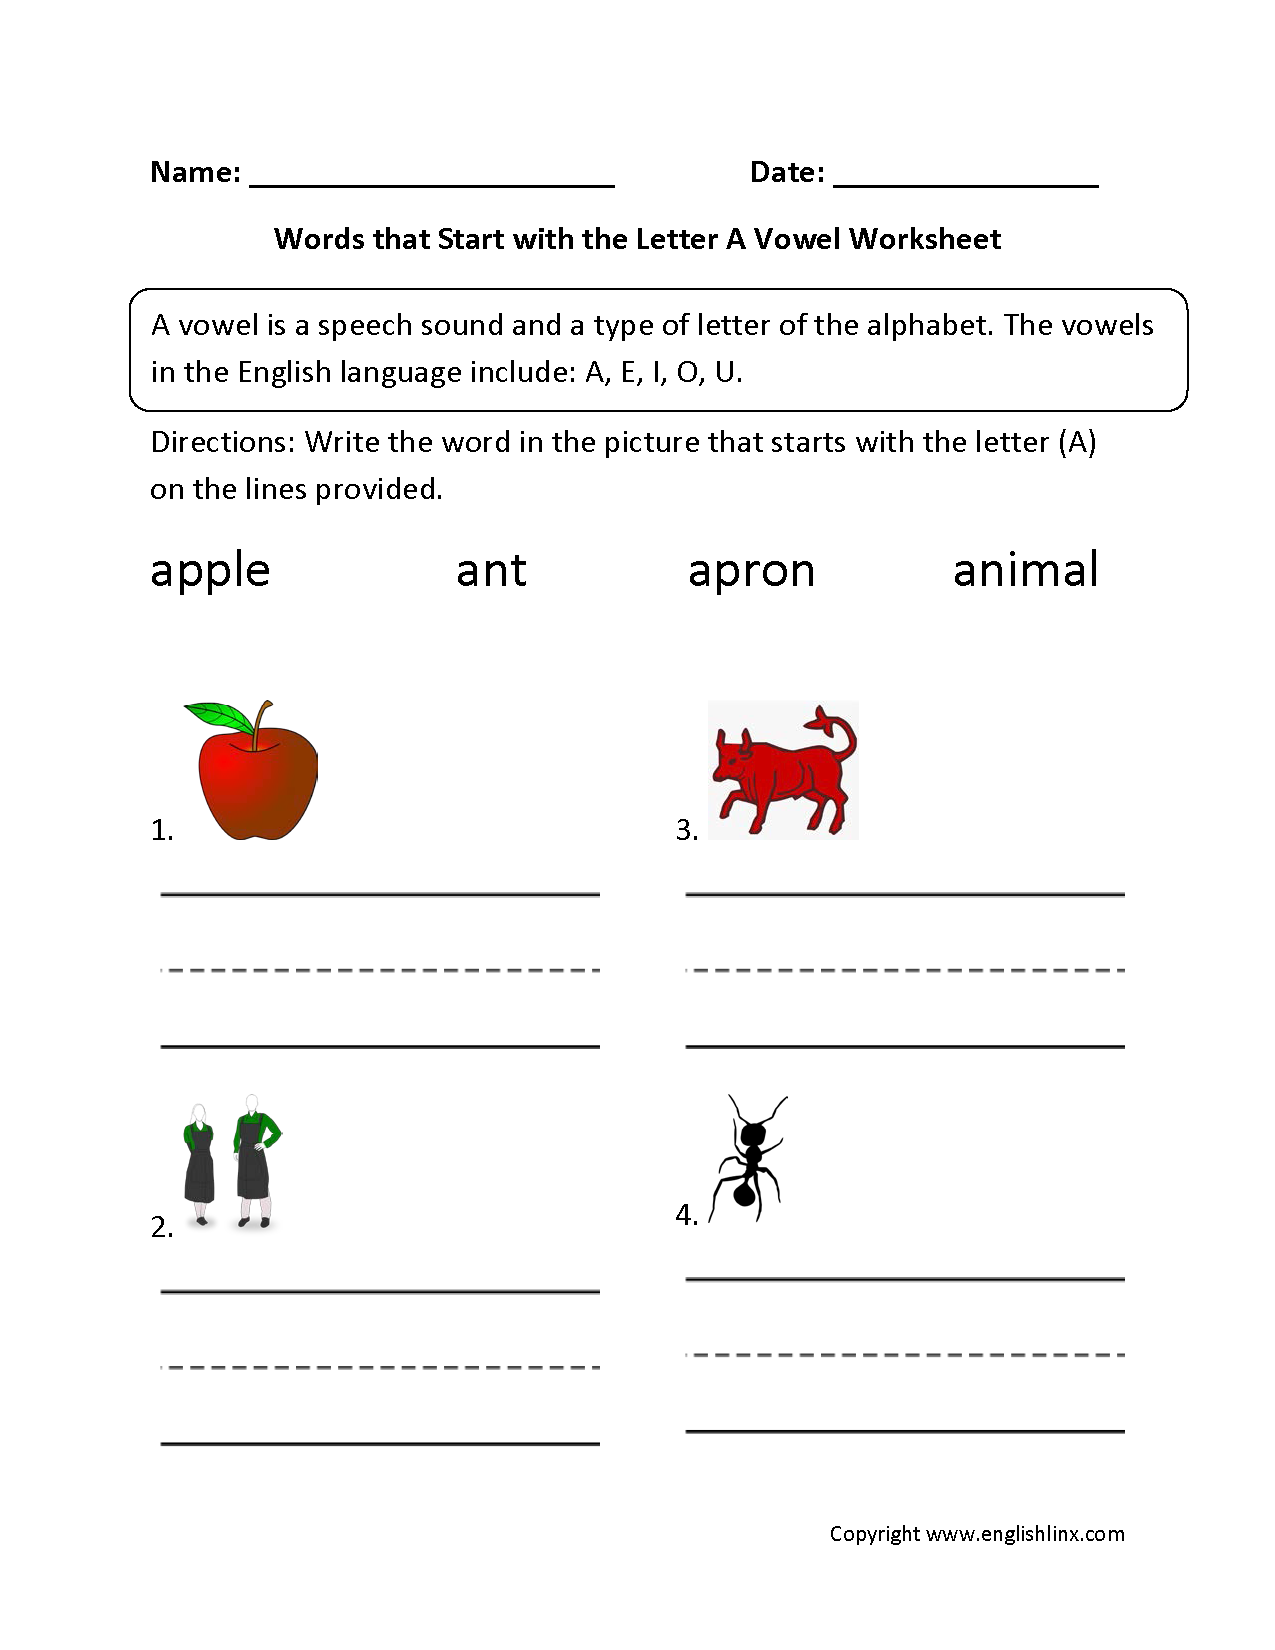 Words Start Letter A Vowel Worksheets  EnglishlinxCom Board